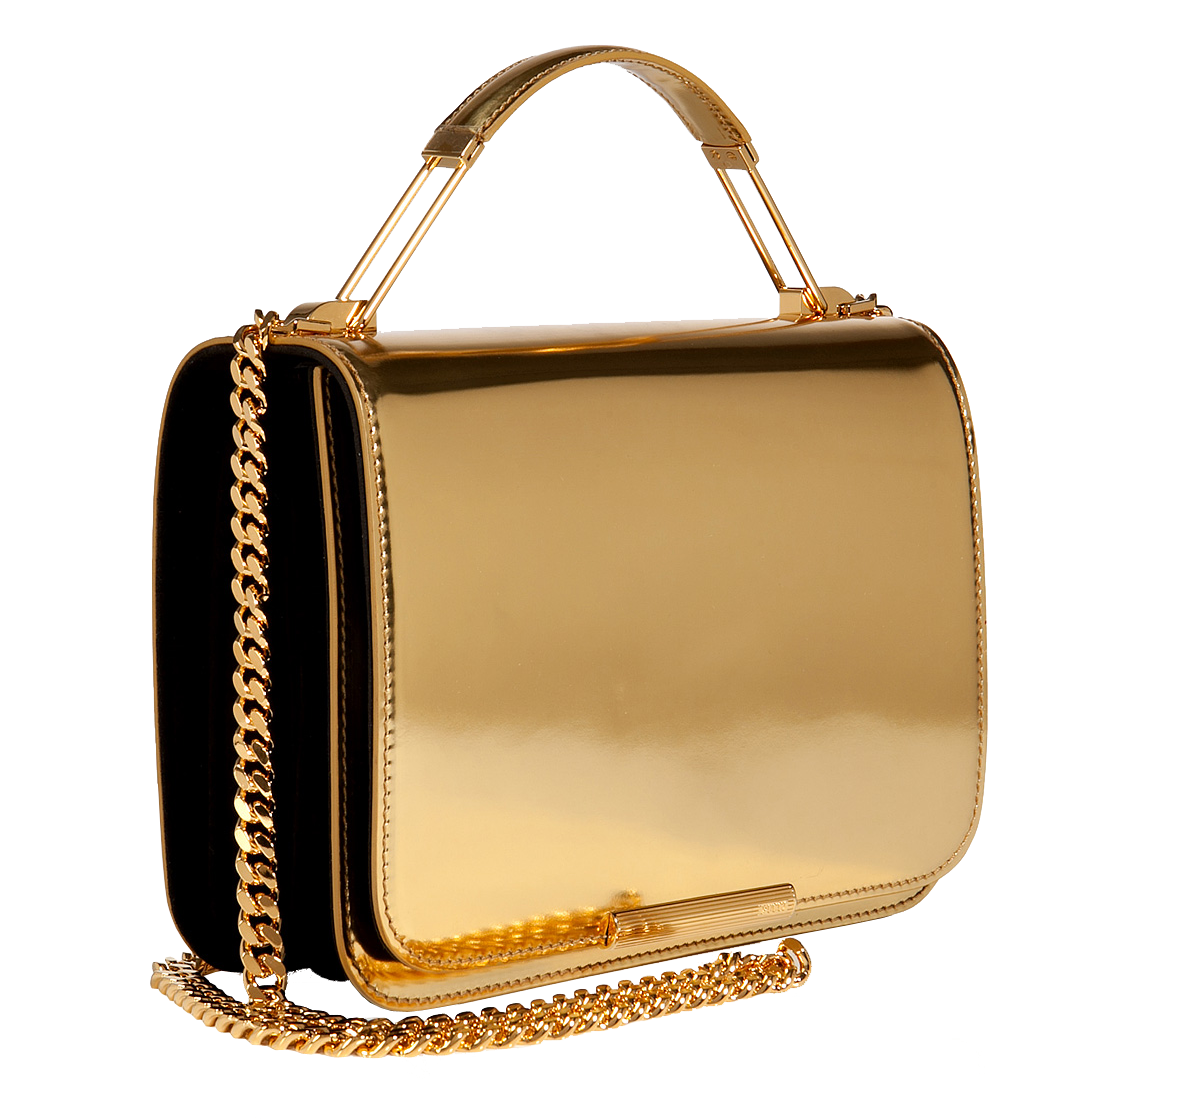 Emilio Pucci Leather Accordion Satchel in Gold Metallic